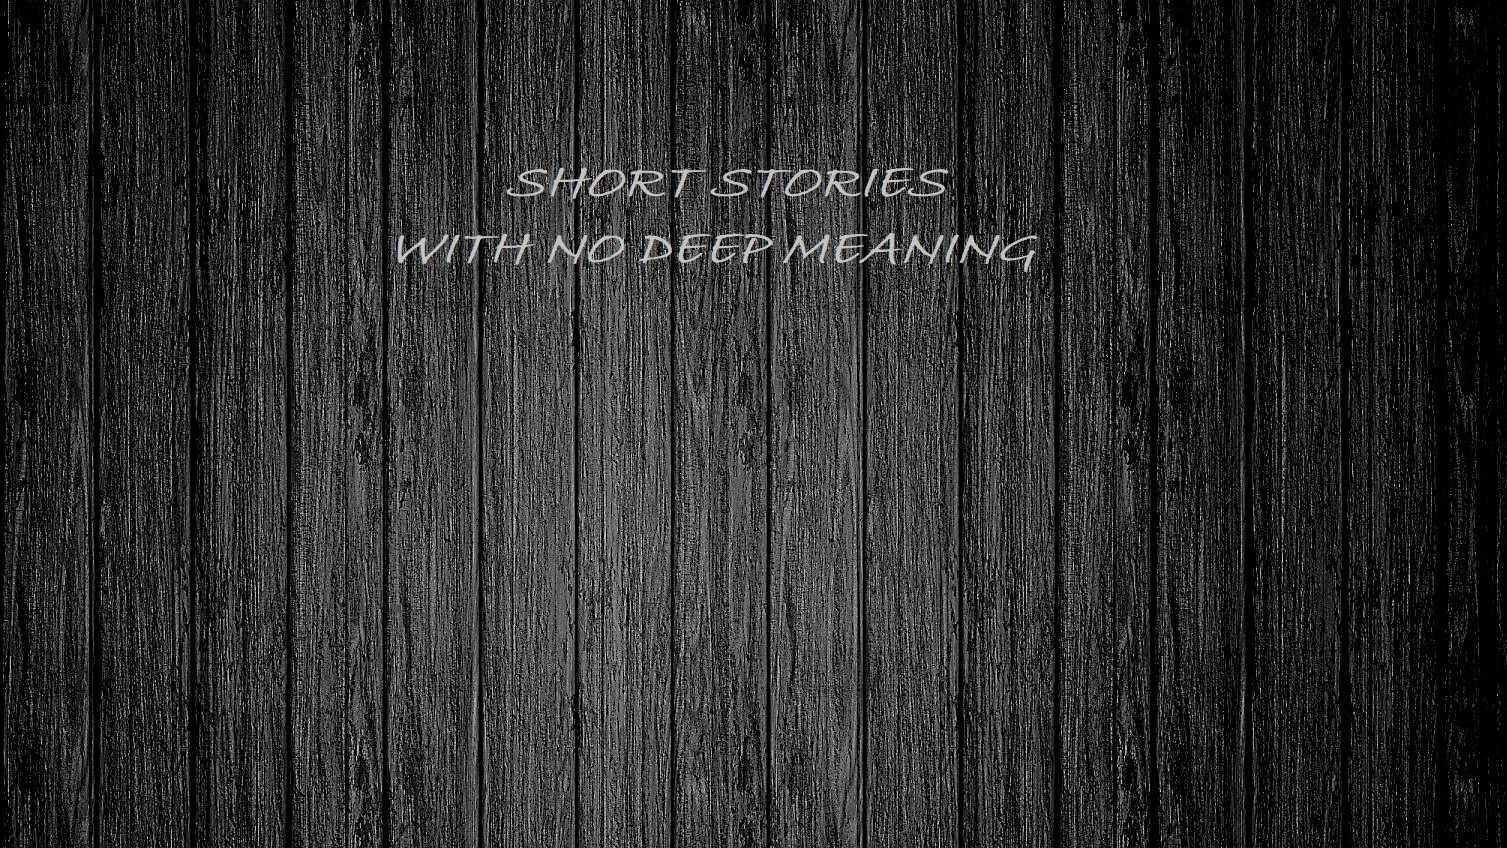 Short stories with no deep meaning book by firstbookwriter